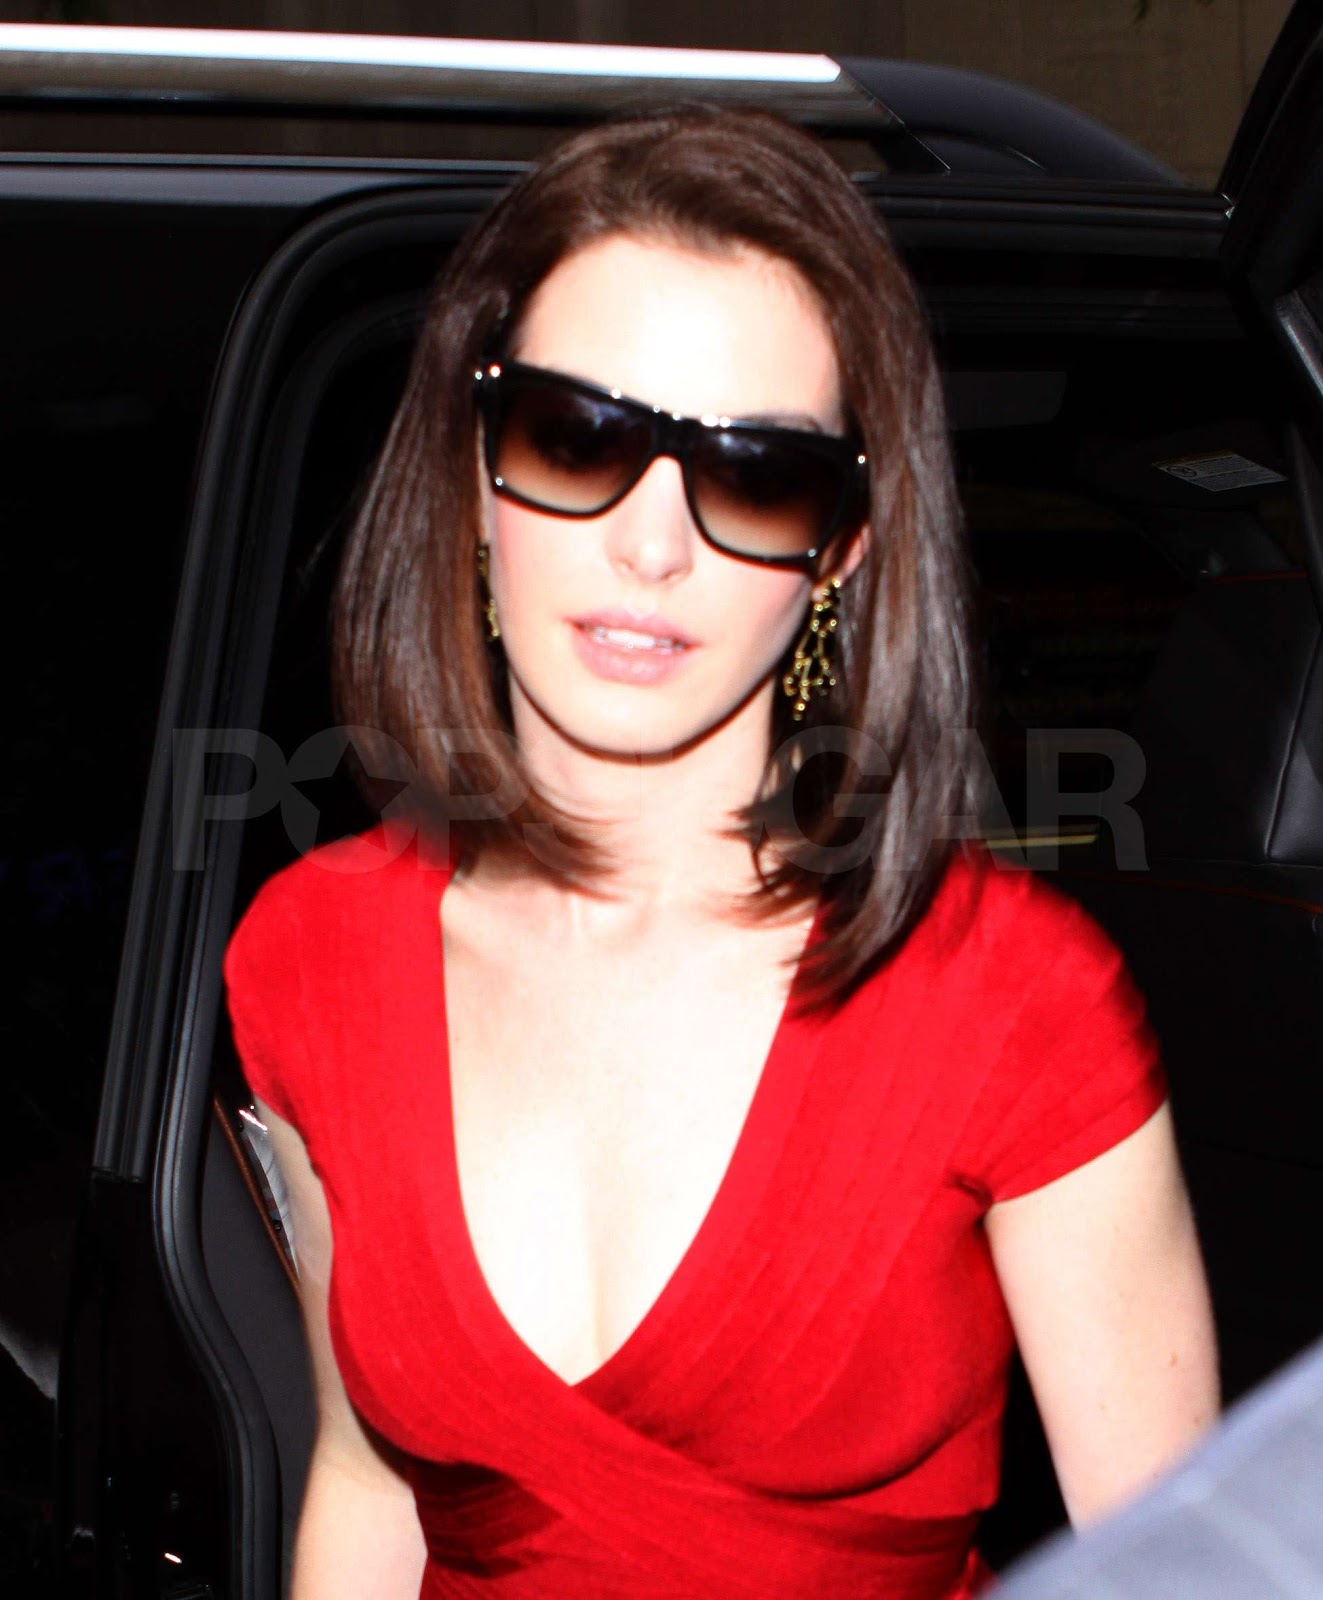 Herve Leger Sightings: Anne Hathaway Spotted In New York